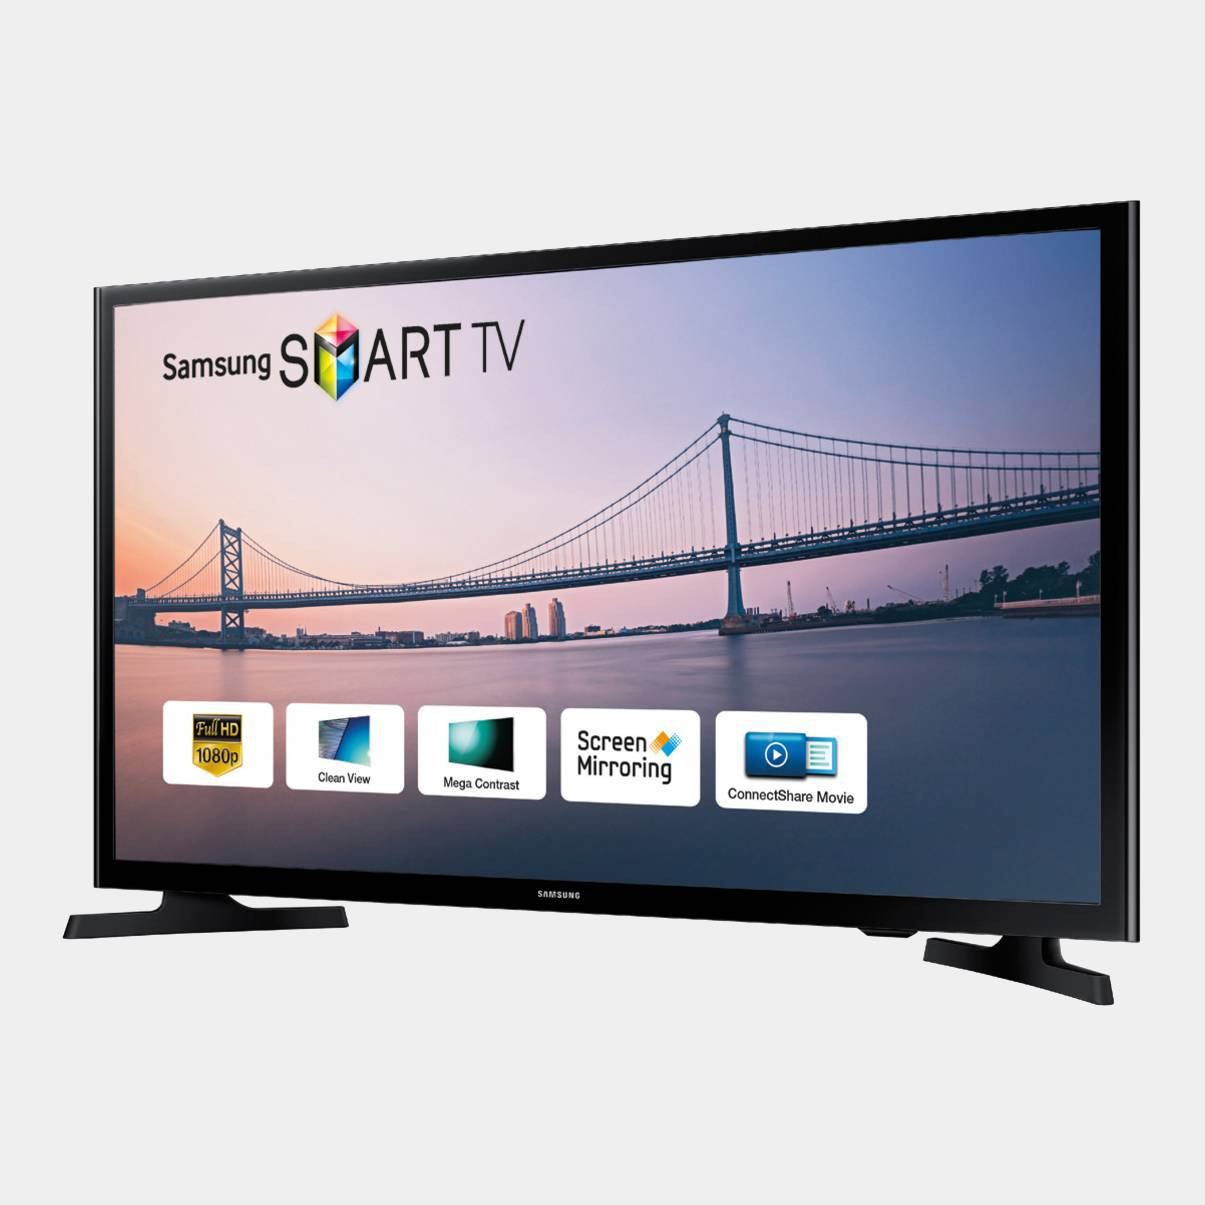 Televisor Smart Tv 32 atractivo Televisor Samsung Ue32j5200 200hz Full Hd Smart Tv Of 50  Magnífica Televisor Smart Tv 32